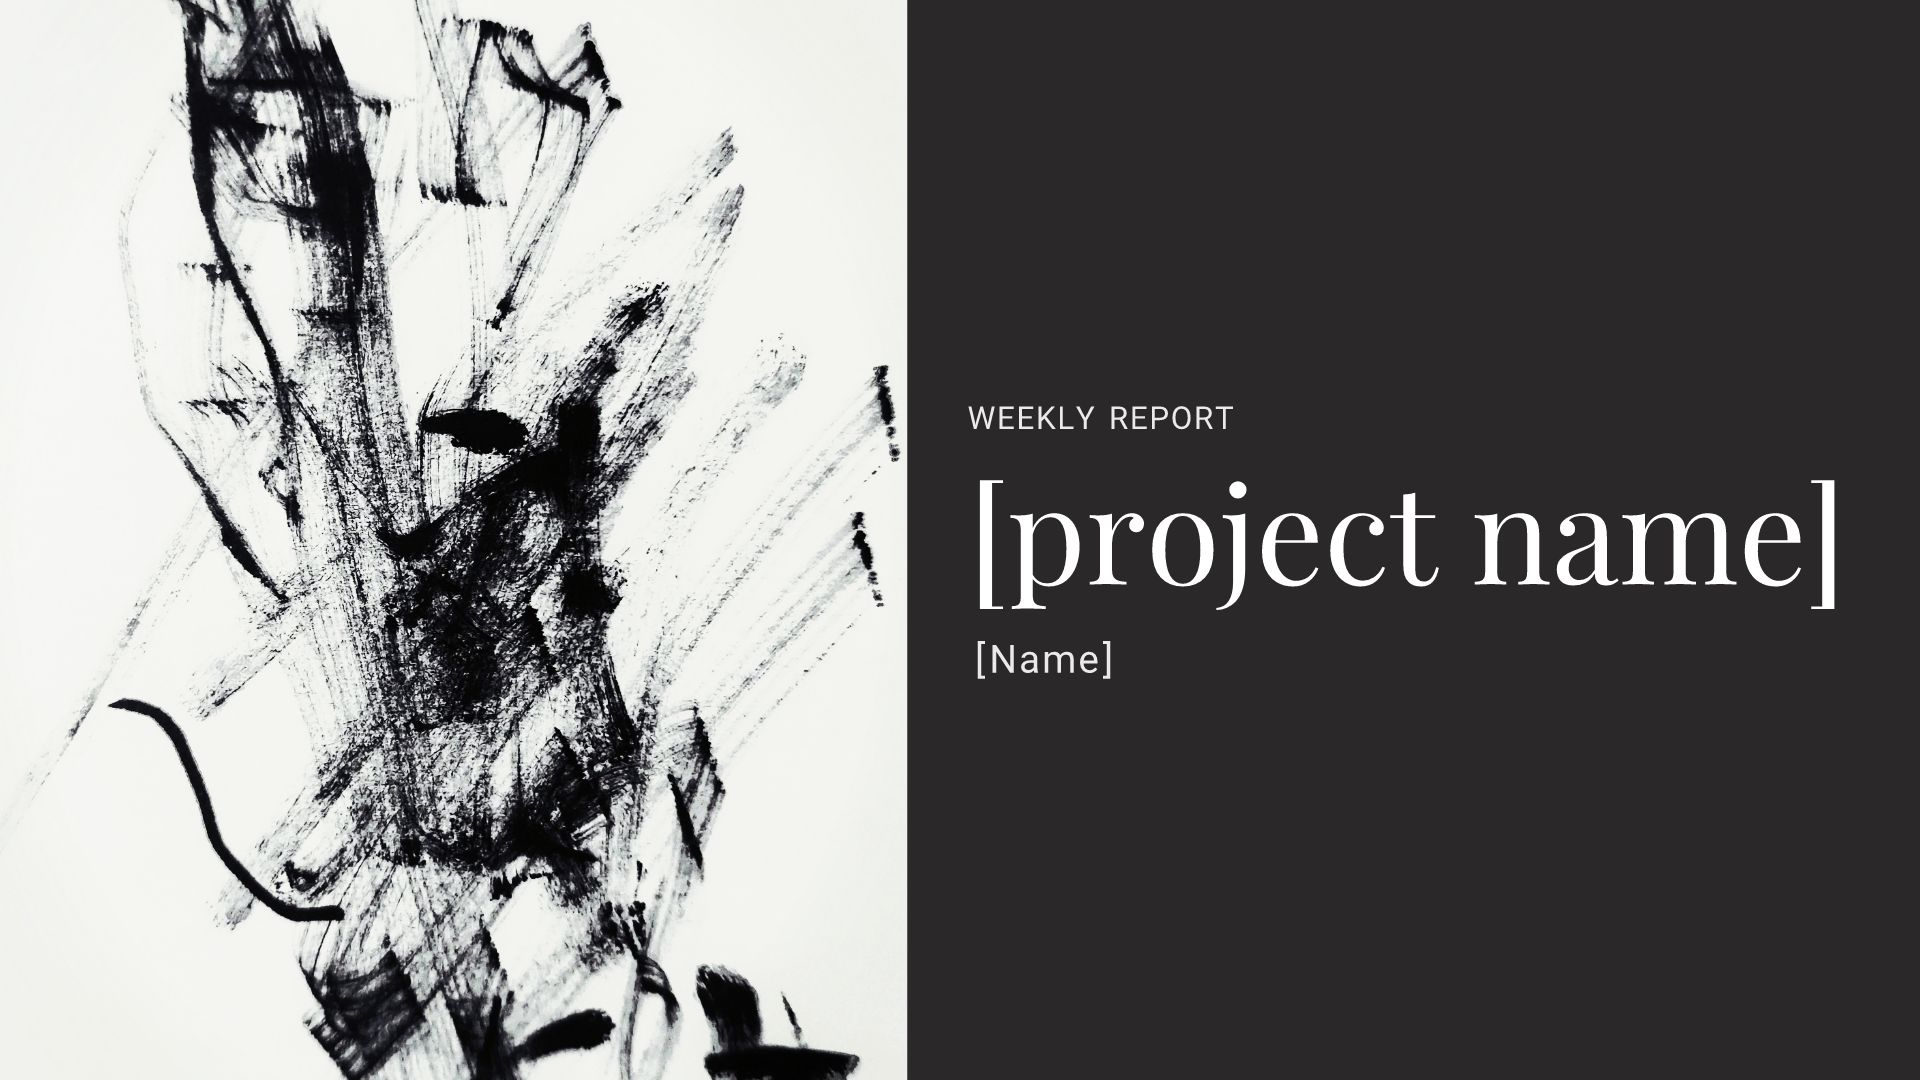 Weekly Report Presentation